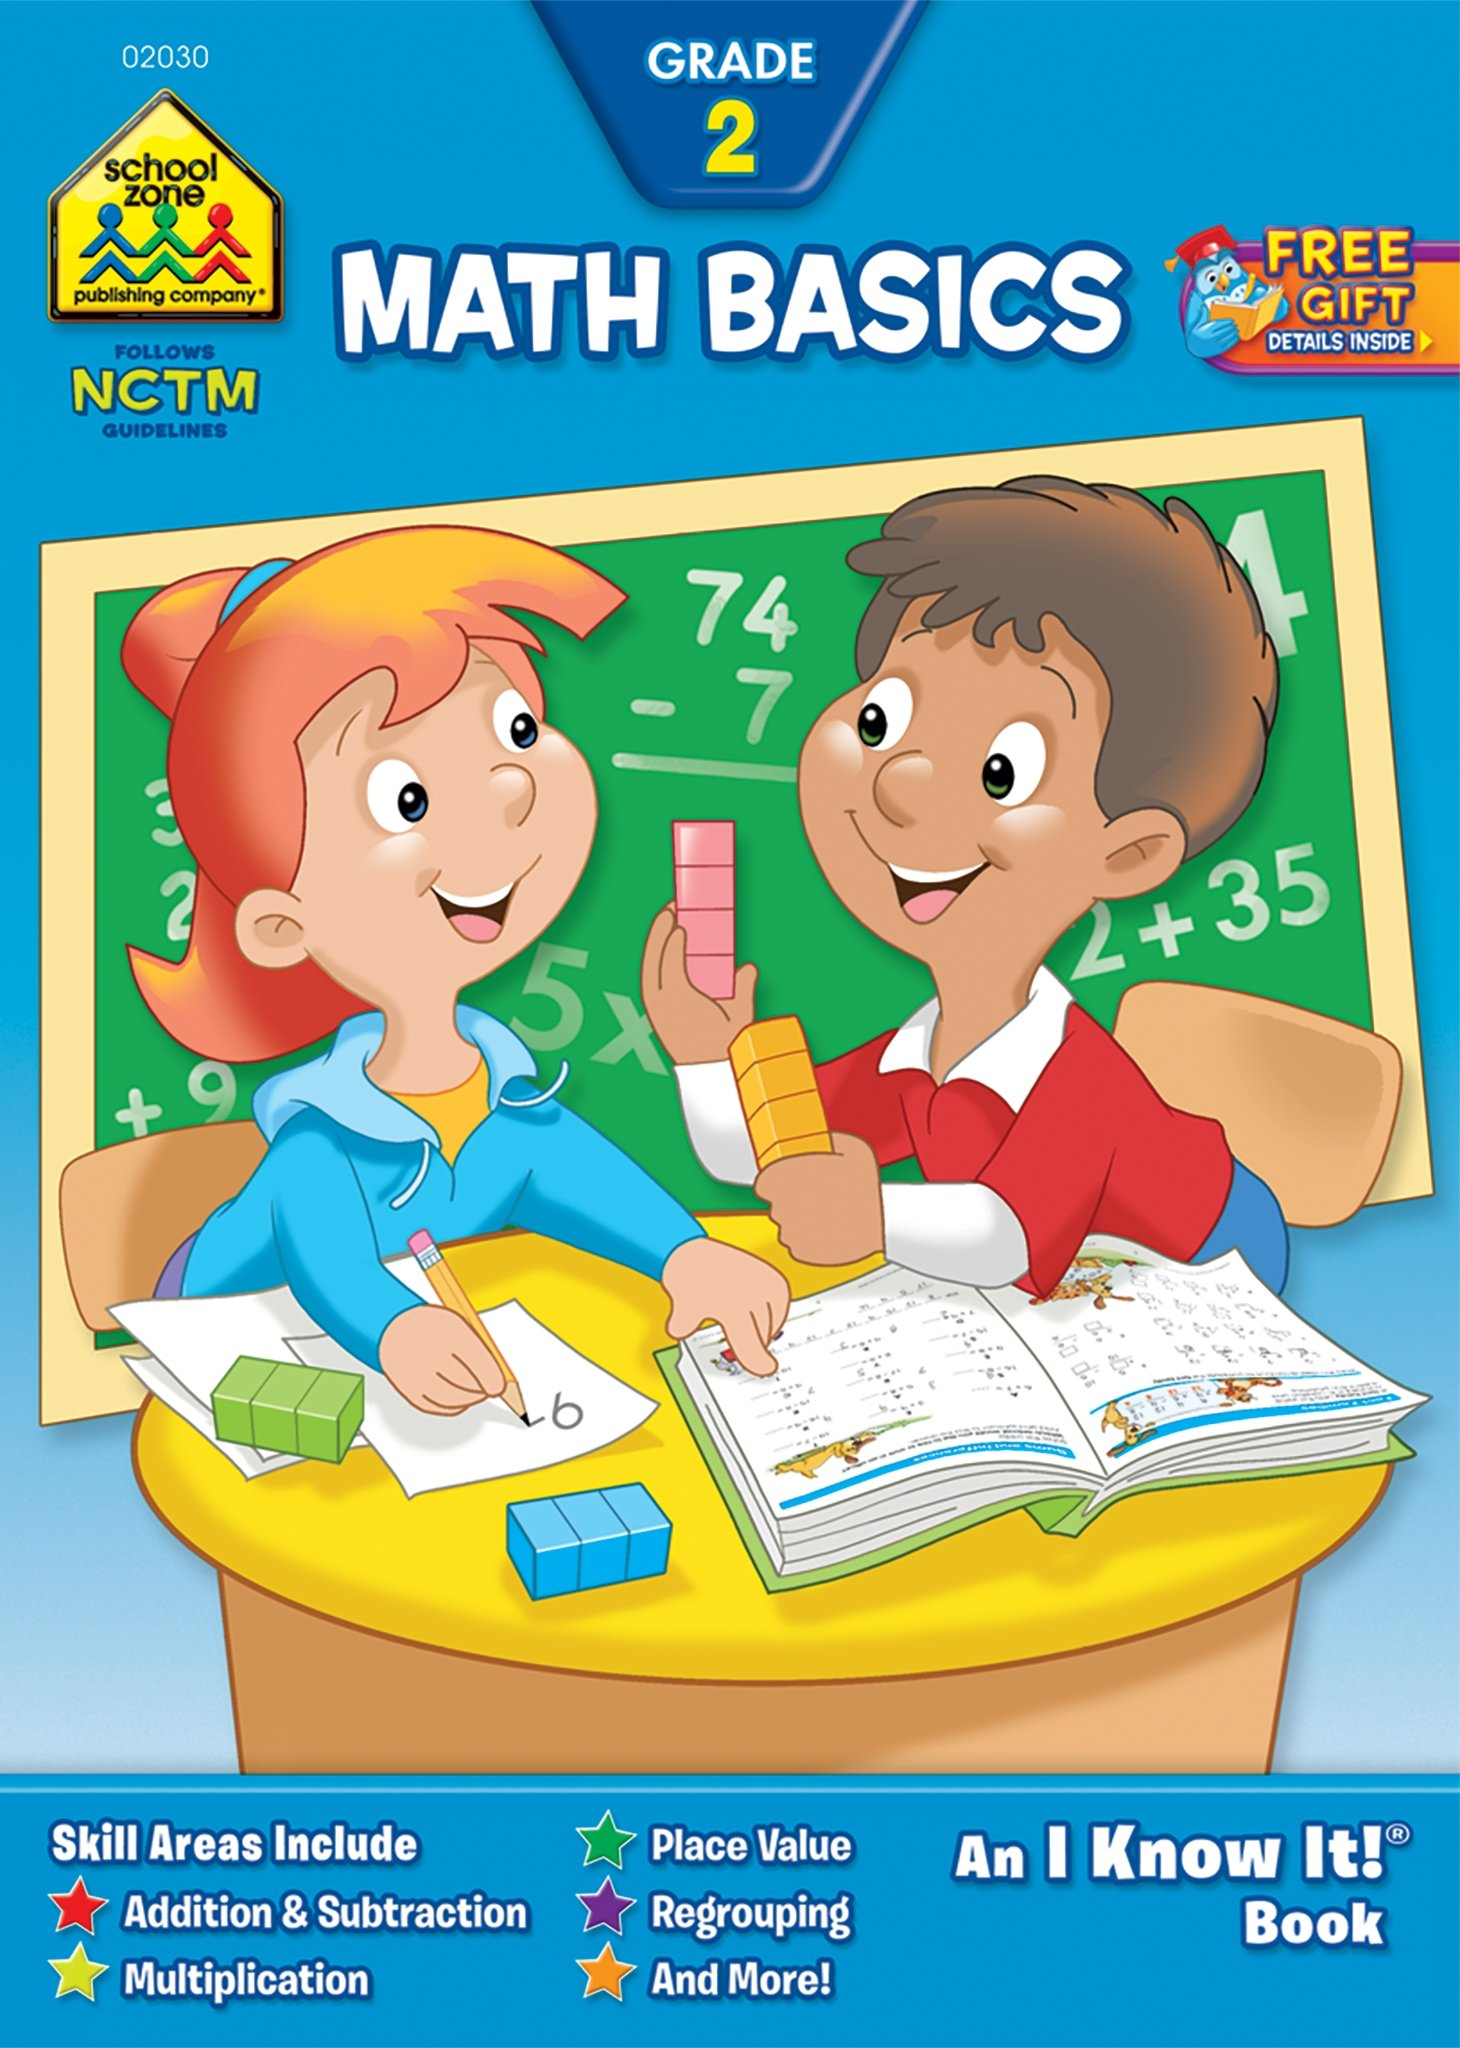 SCHOOL ZONE - Math Basics 2 Workbook, Grade 2, Ages 7 to 8, I Know It!®, Addition, Subtraction, Multiplication, Place Value, Greater Than, Less Than, Illustrations and More! (I Know It! Books)